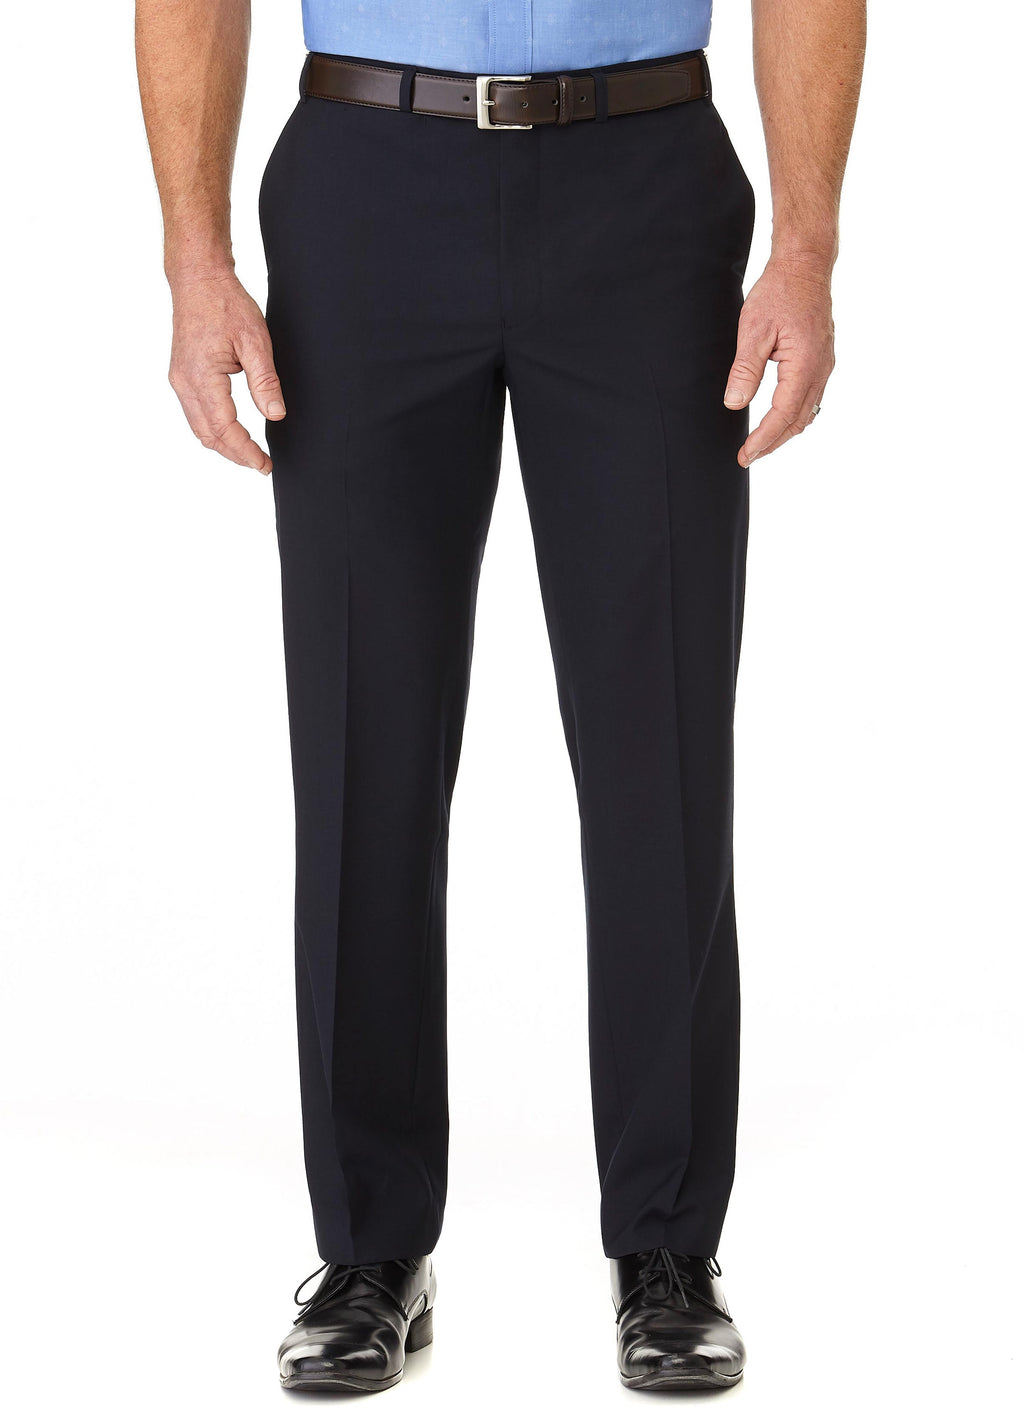 LONSDALE FLAT FRONT TROUSER